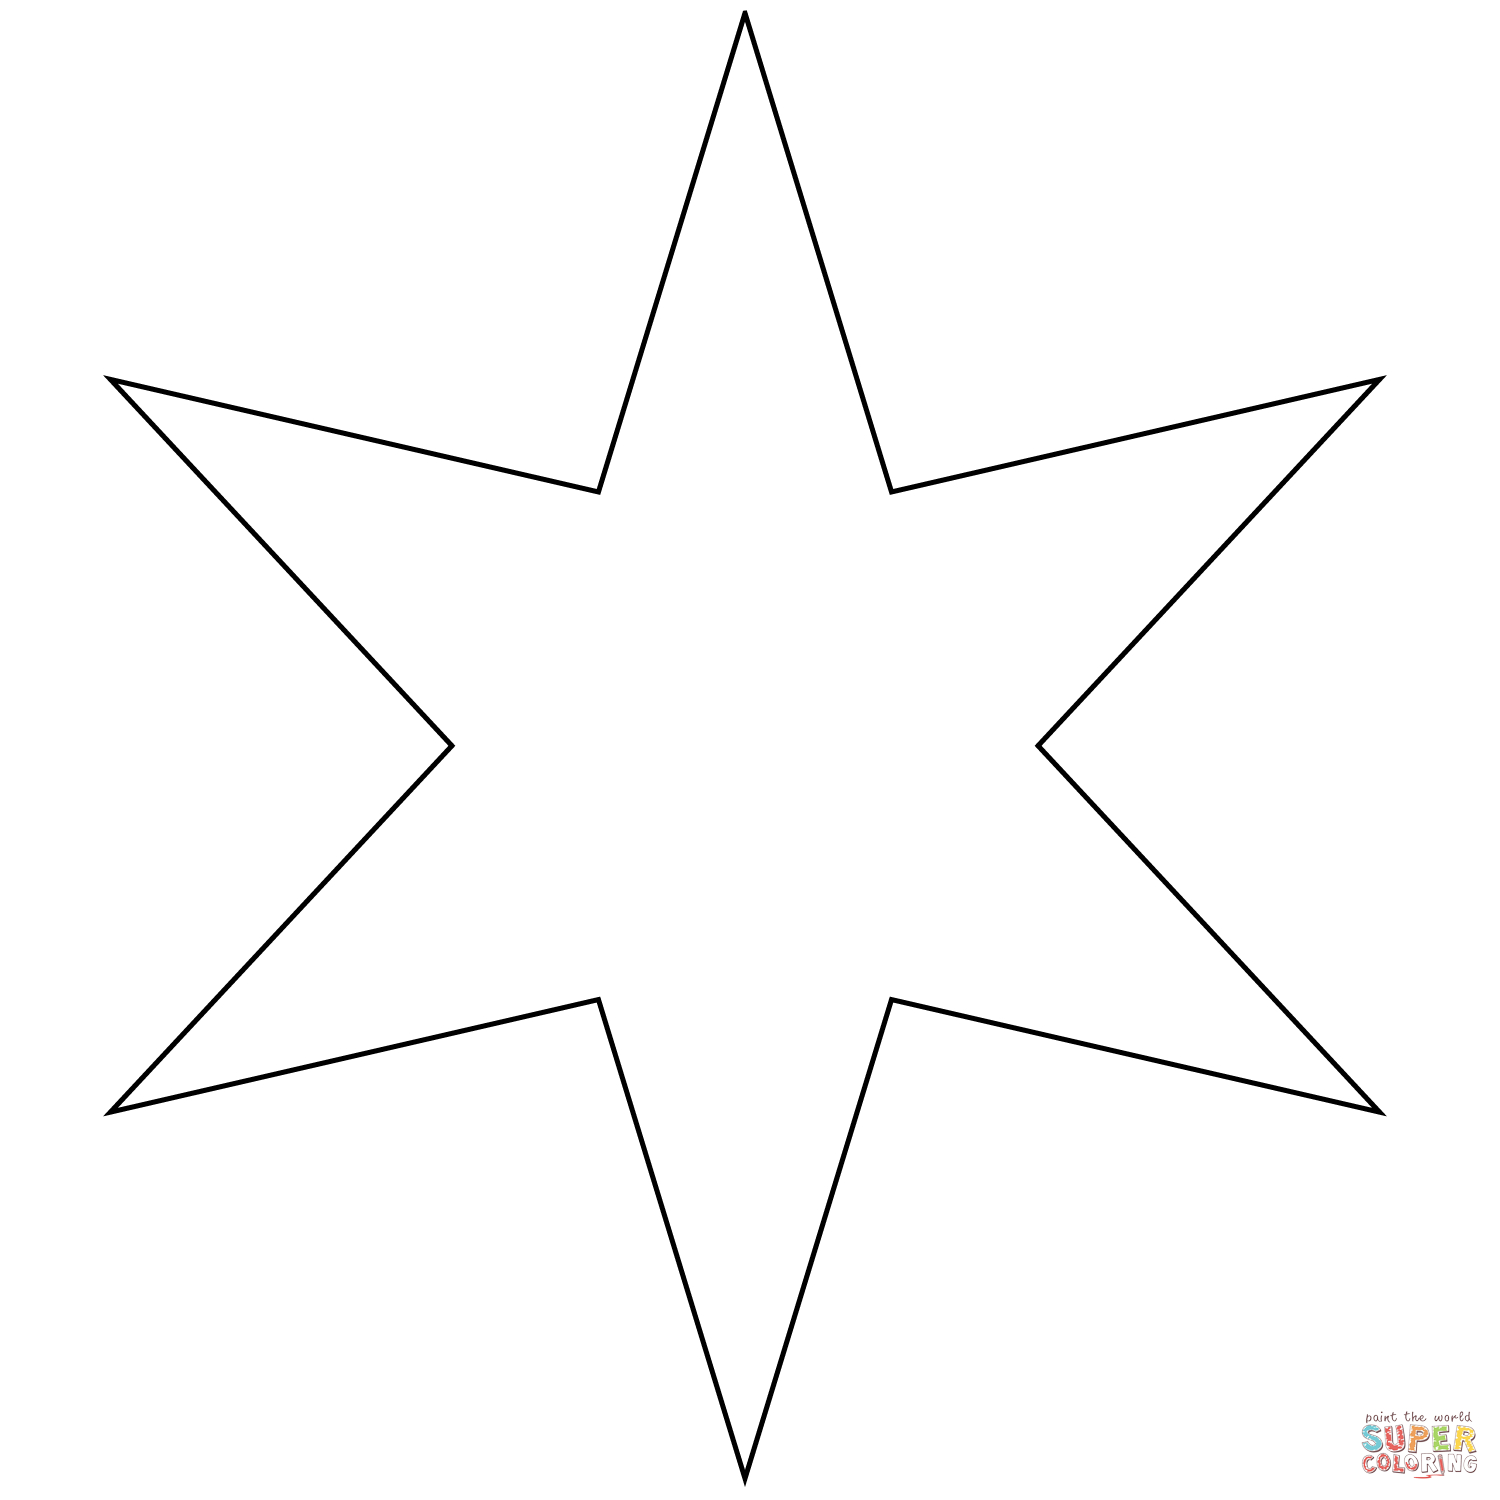 Coloring Page Of A Star Six Pointed Star Coloring Page Free Printable Coloring Pages